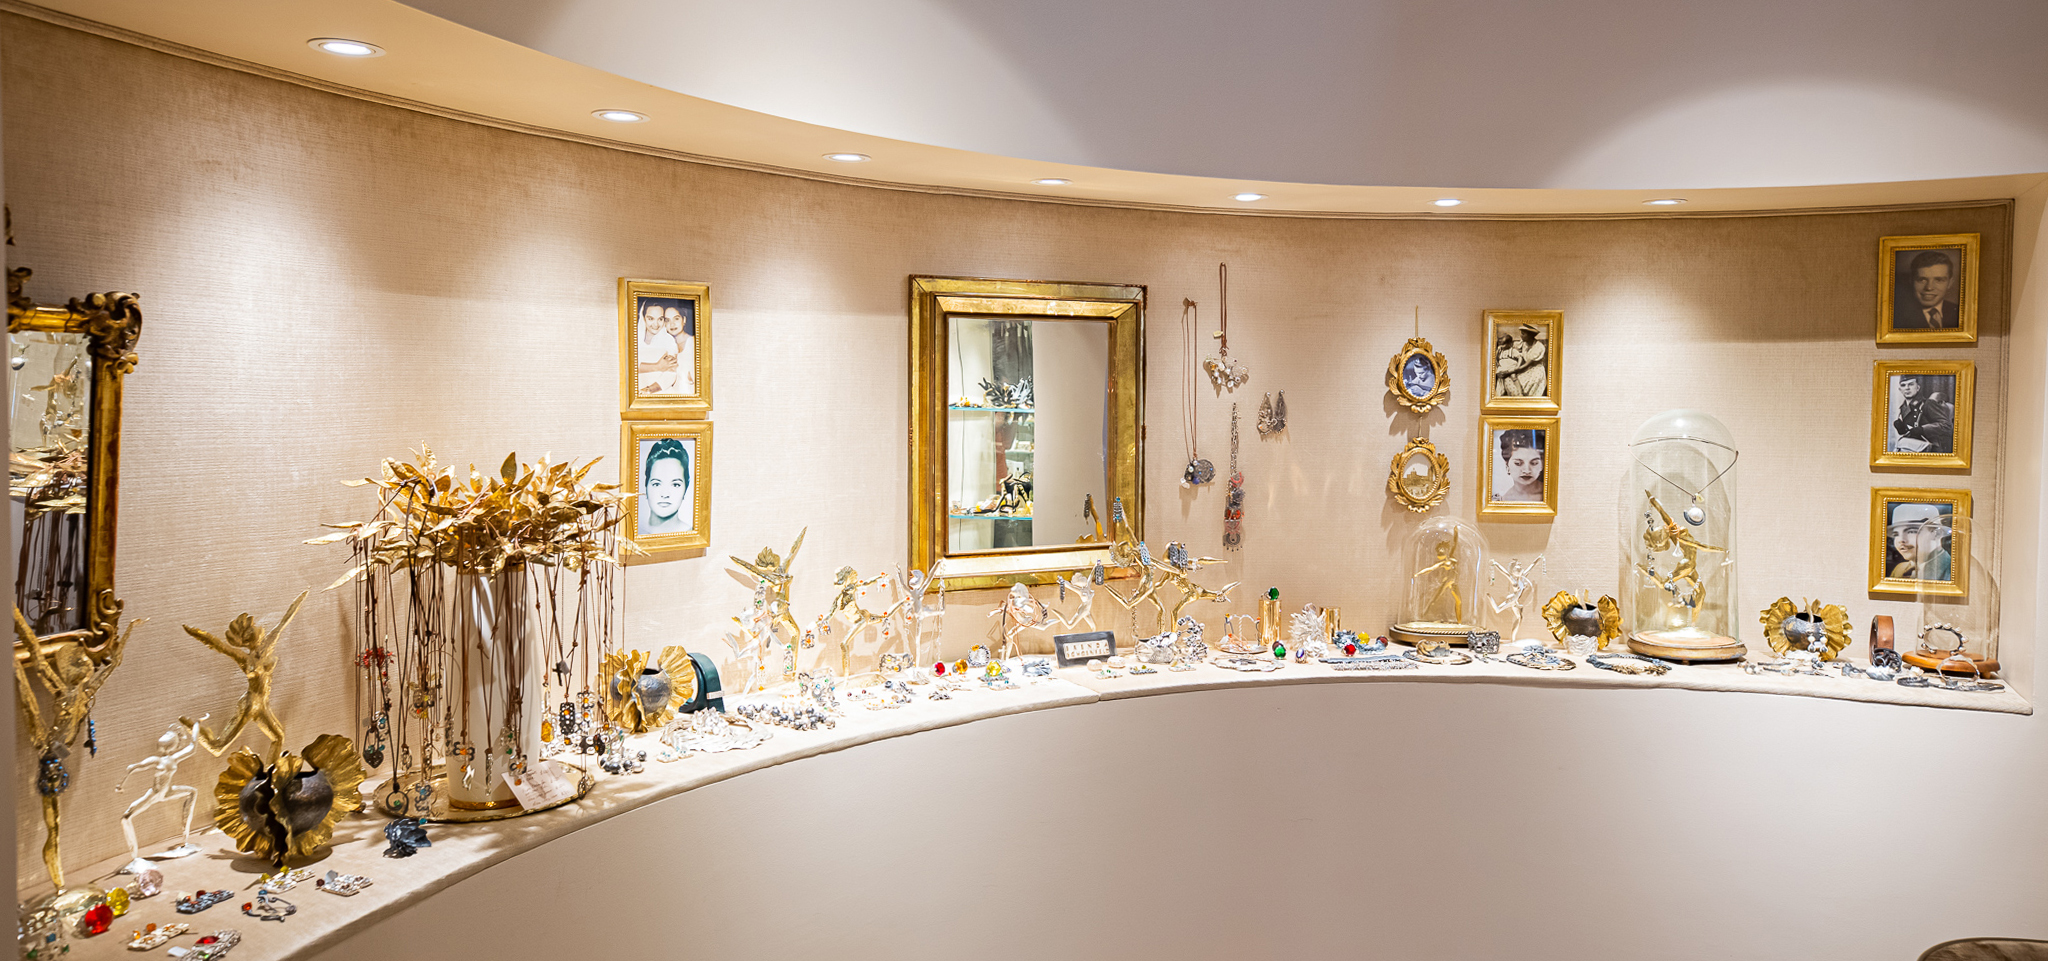 Brenda Schoenfeld NOW Store in Dallas, TX on Oak Lawn Ave - View of Jewelry Area